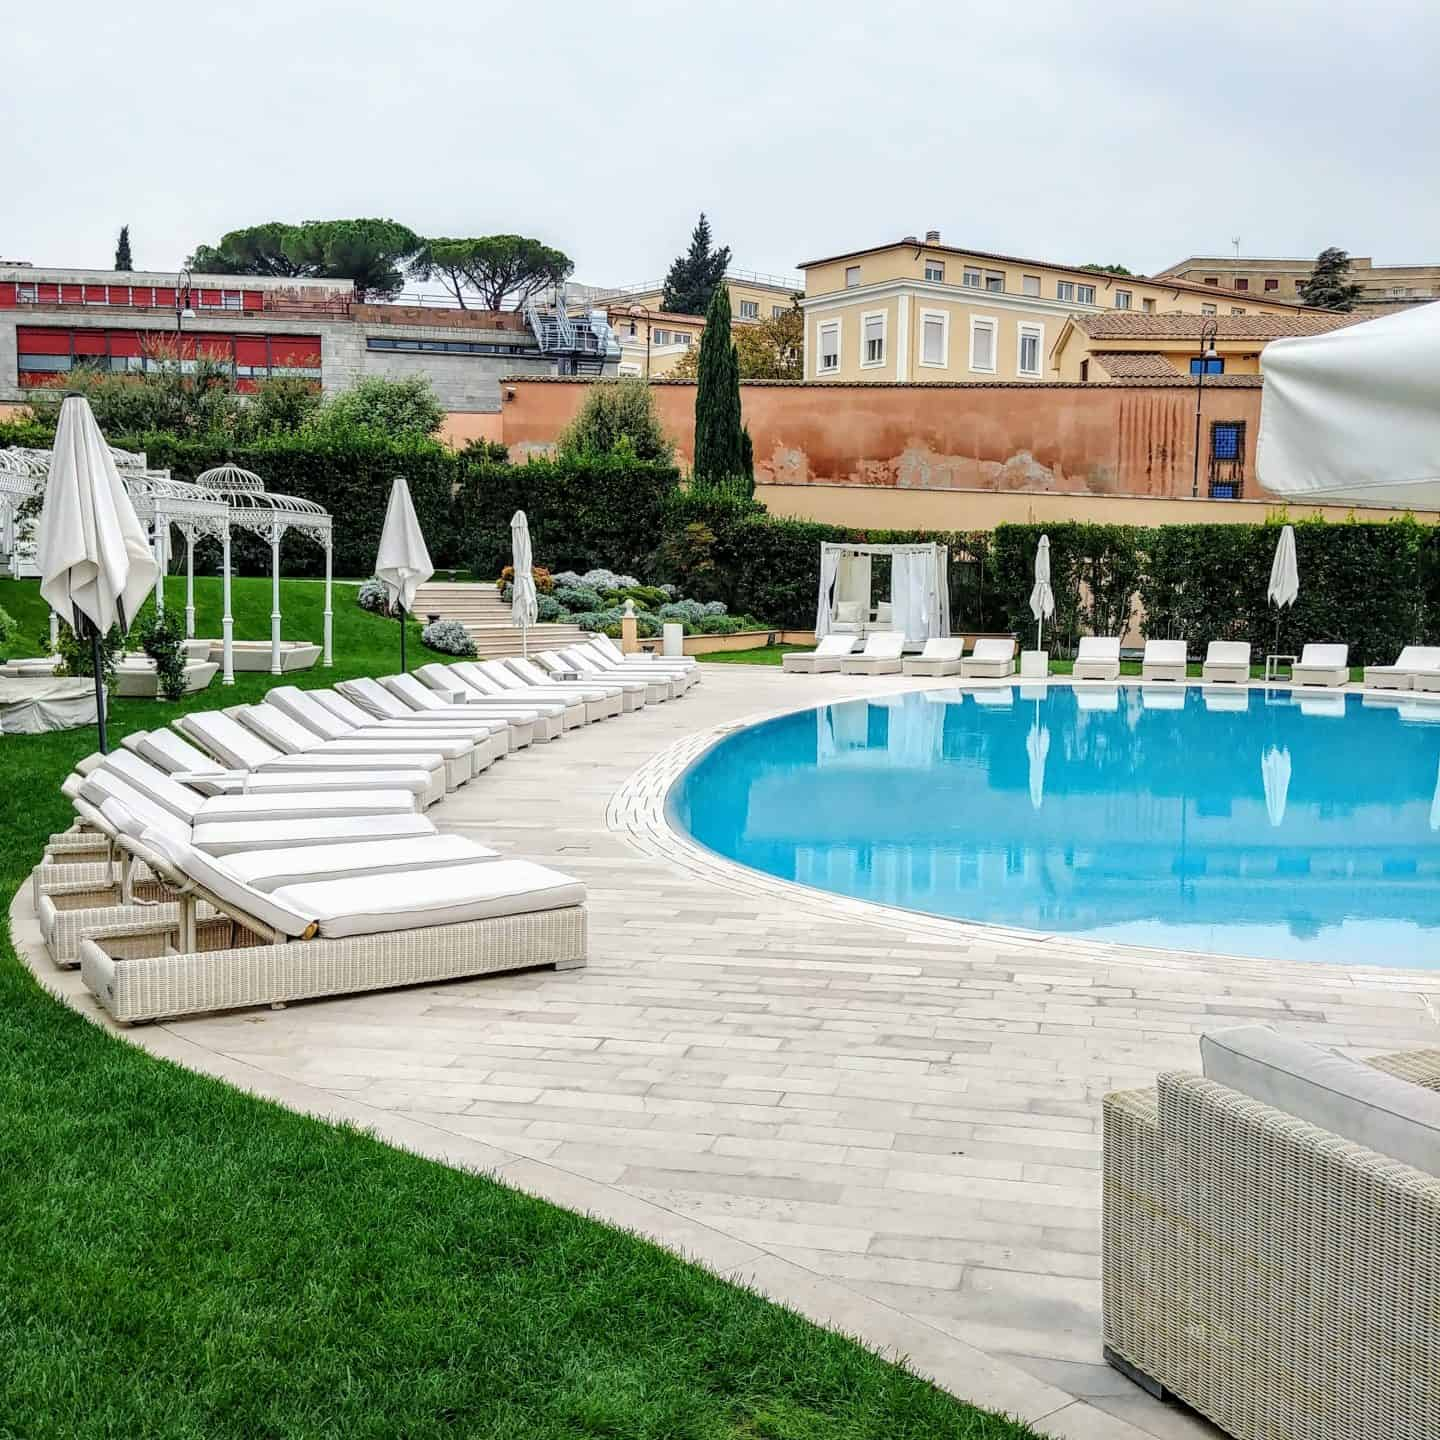 Gran Melia Rome Villa Agrippina – A Luxury Oasis in the Heart of Rome